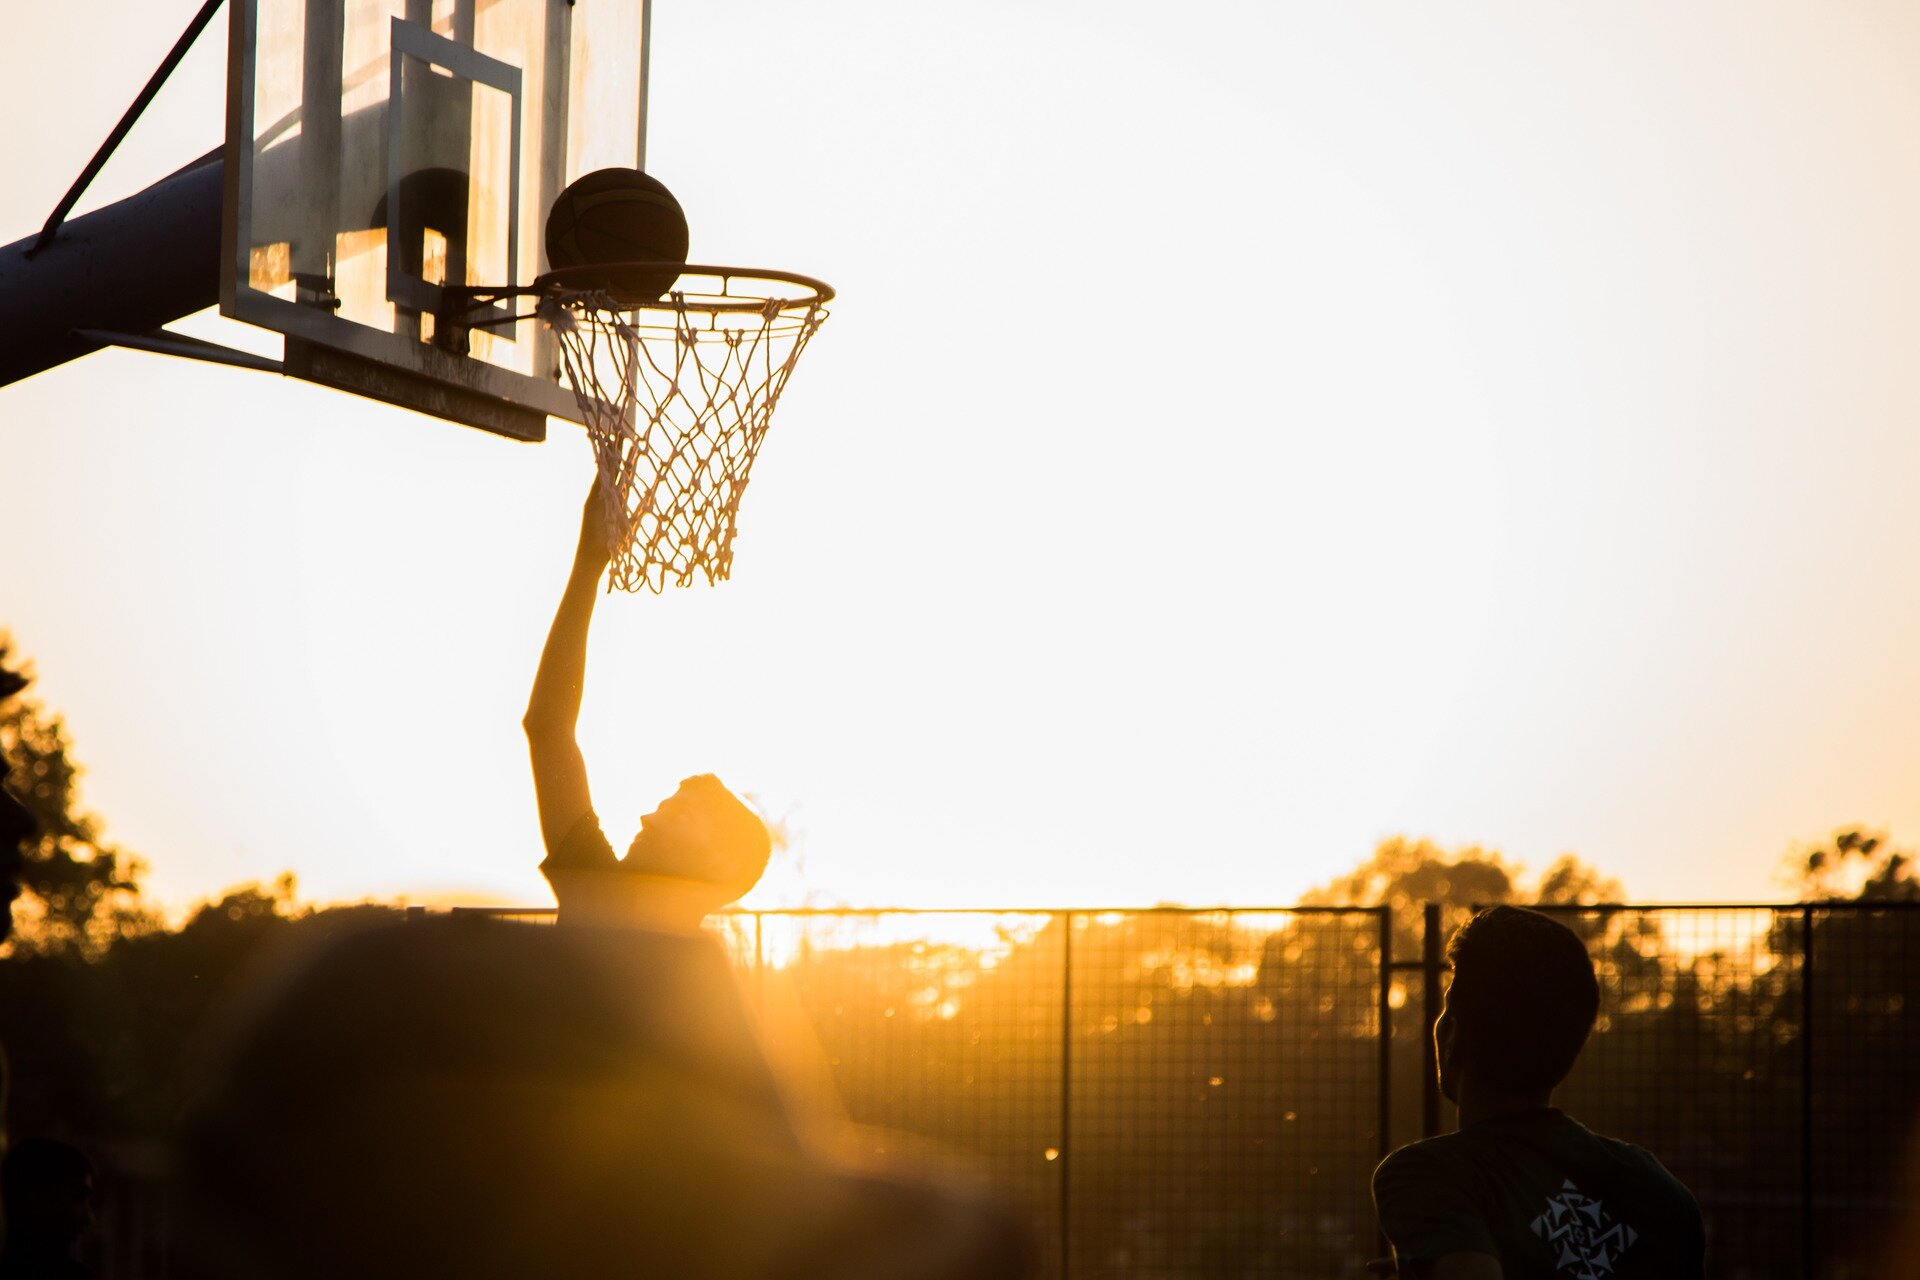 Studies show breakfast can improve basketball shooting performance